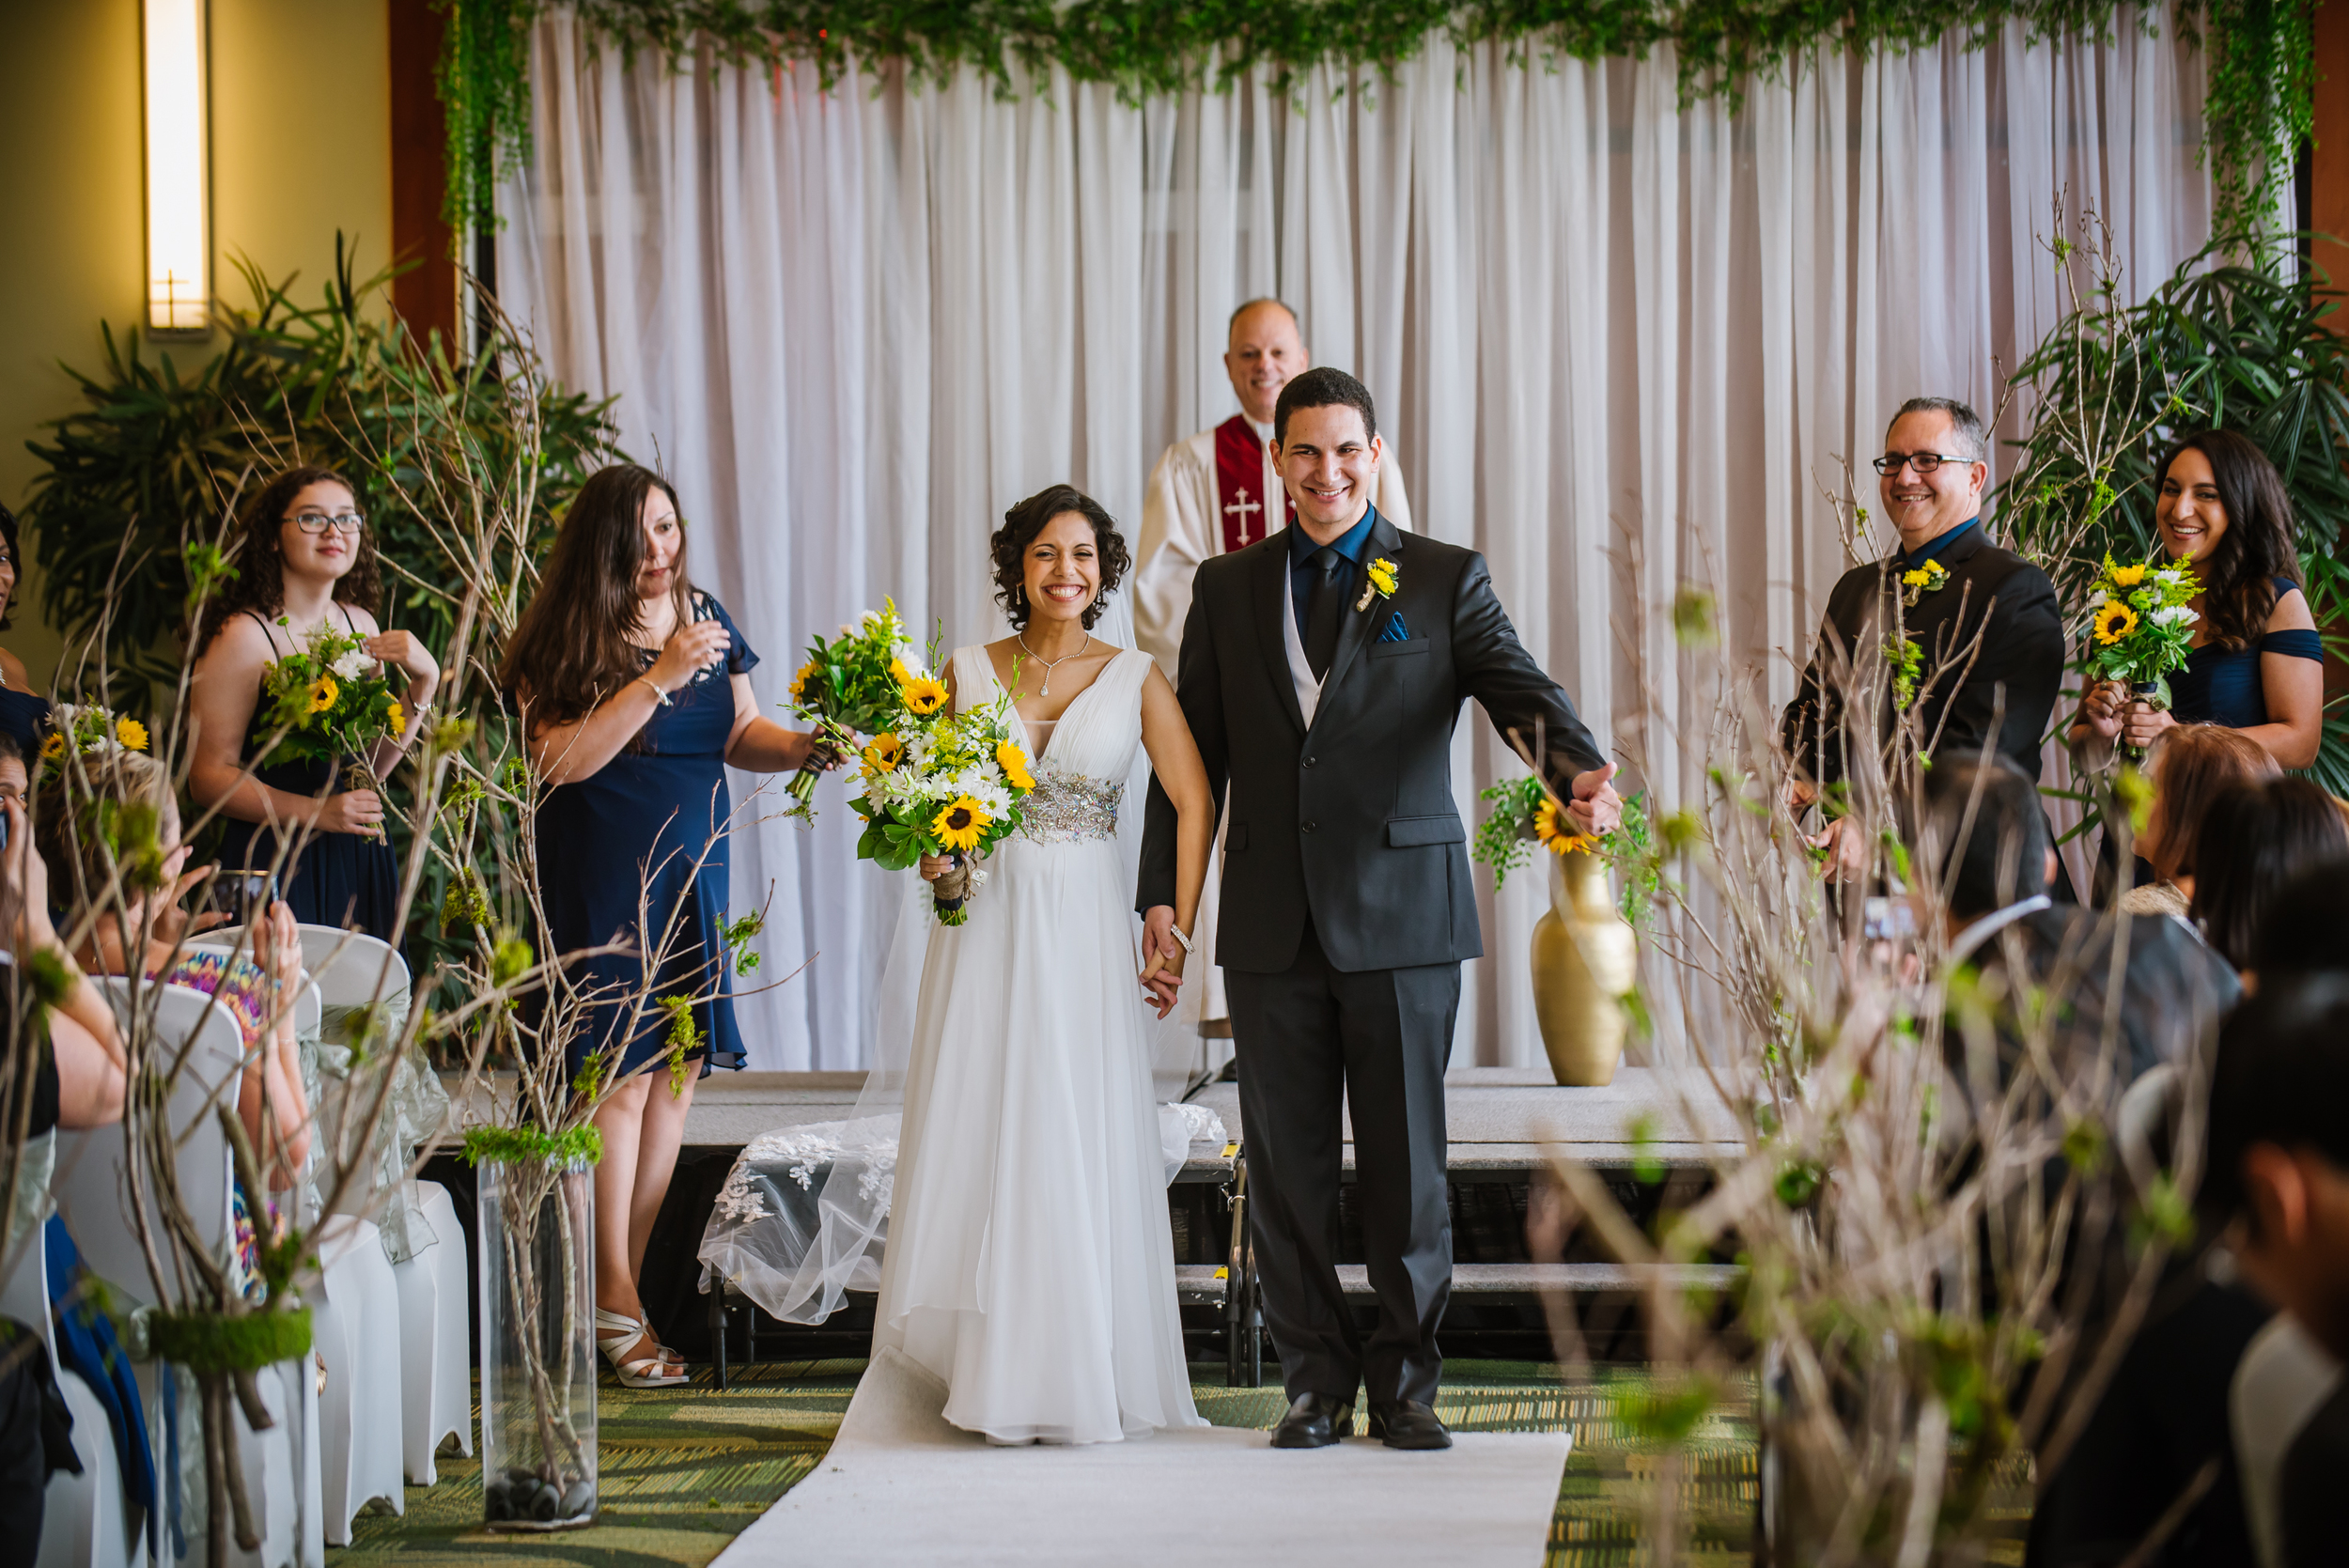 Shaime and Bryan met at USF and got married at USF! They were so excited and true to themselves with their sophisticated Lord of the Rings theme!